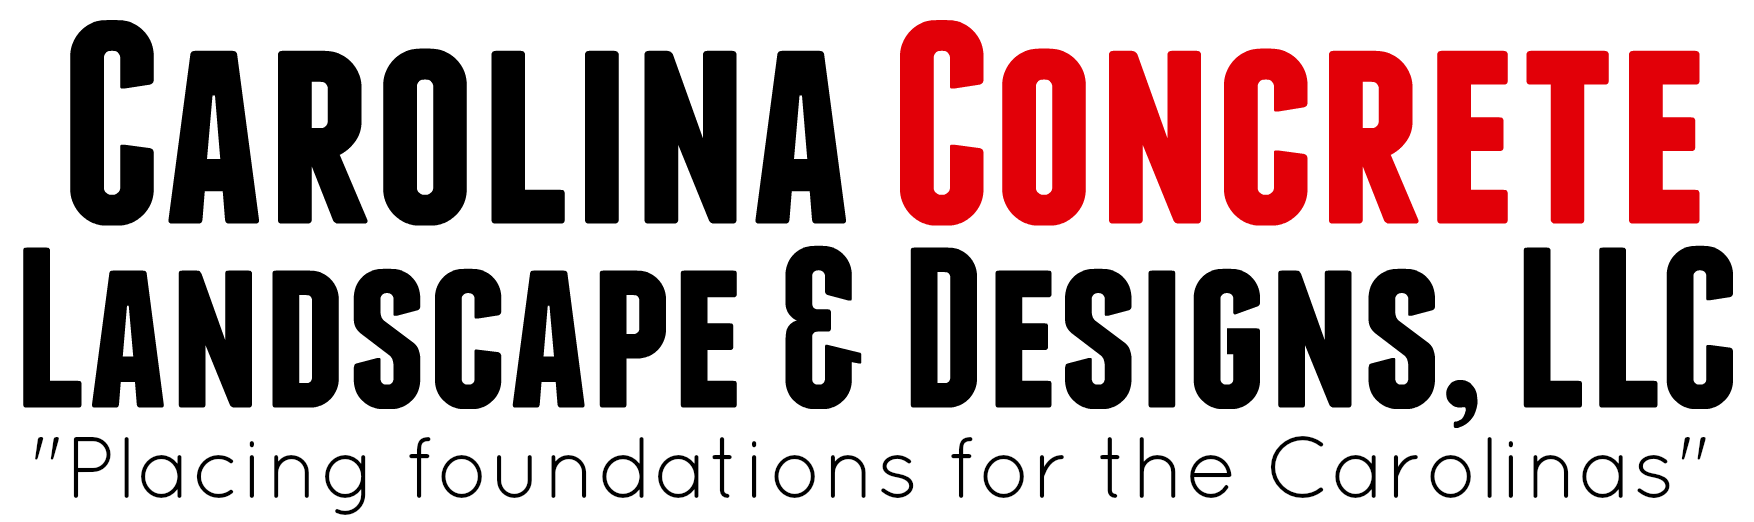 Carolina Concrete & Landscape Design